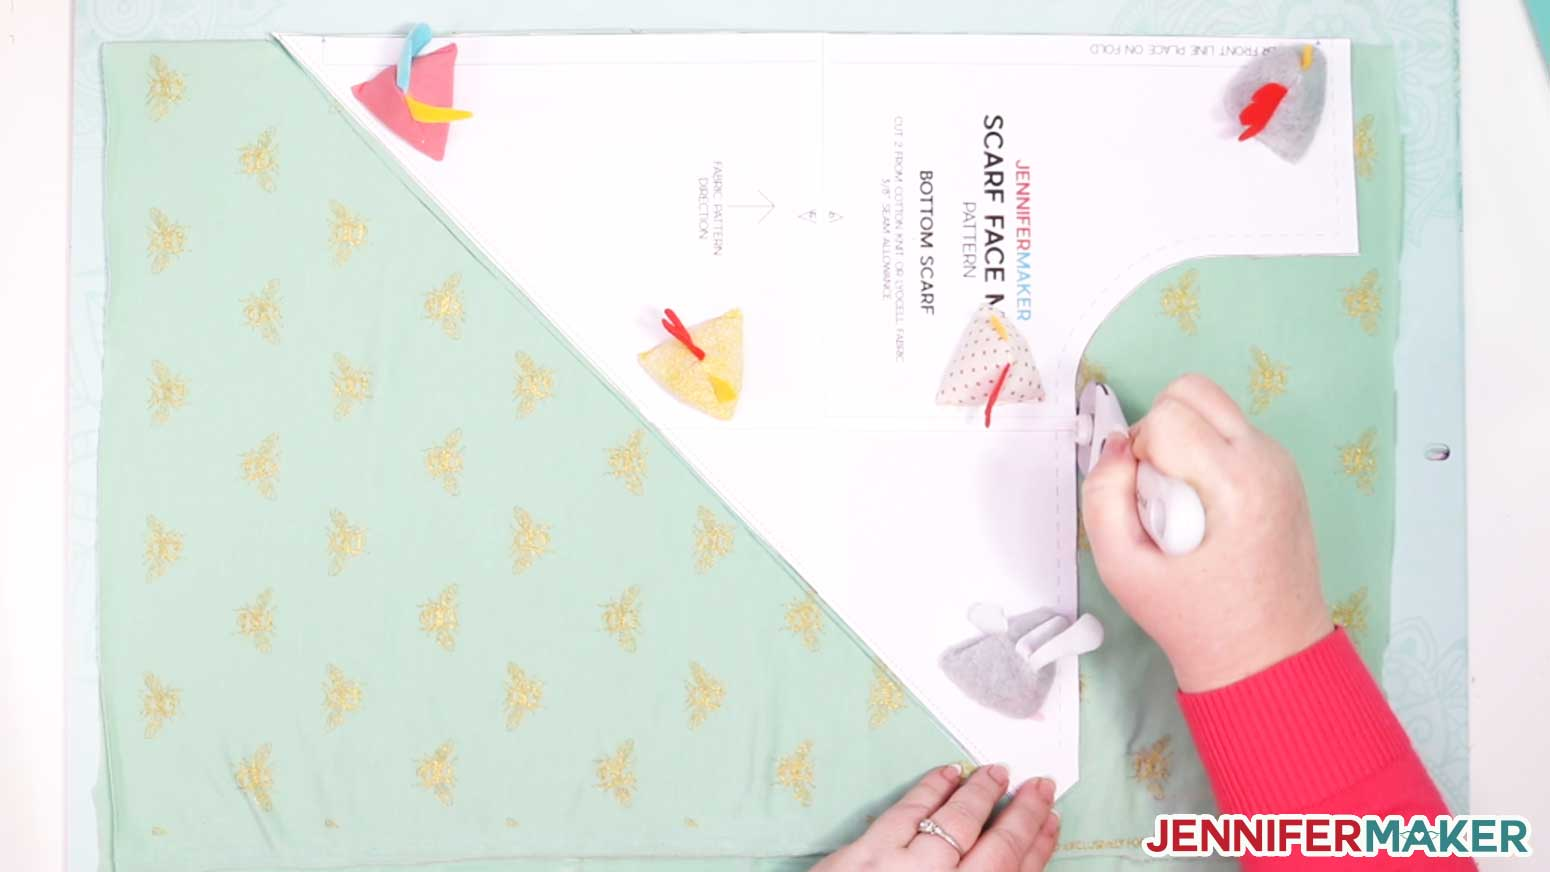 Cutting out green fabric using a rotary blade and DIY pattern weights